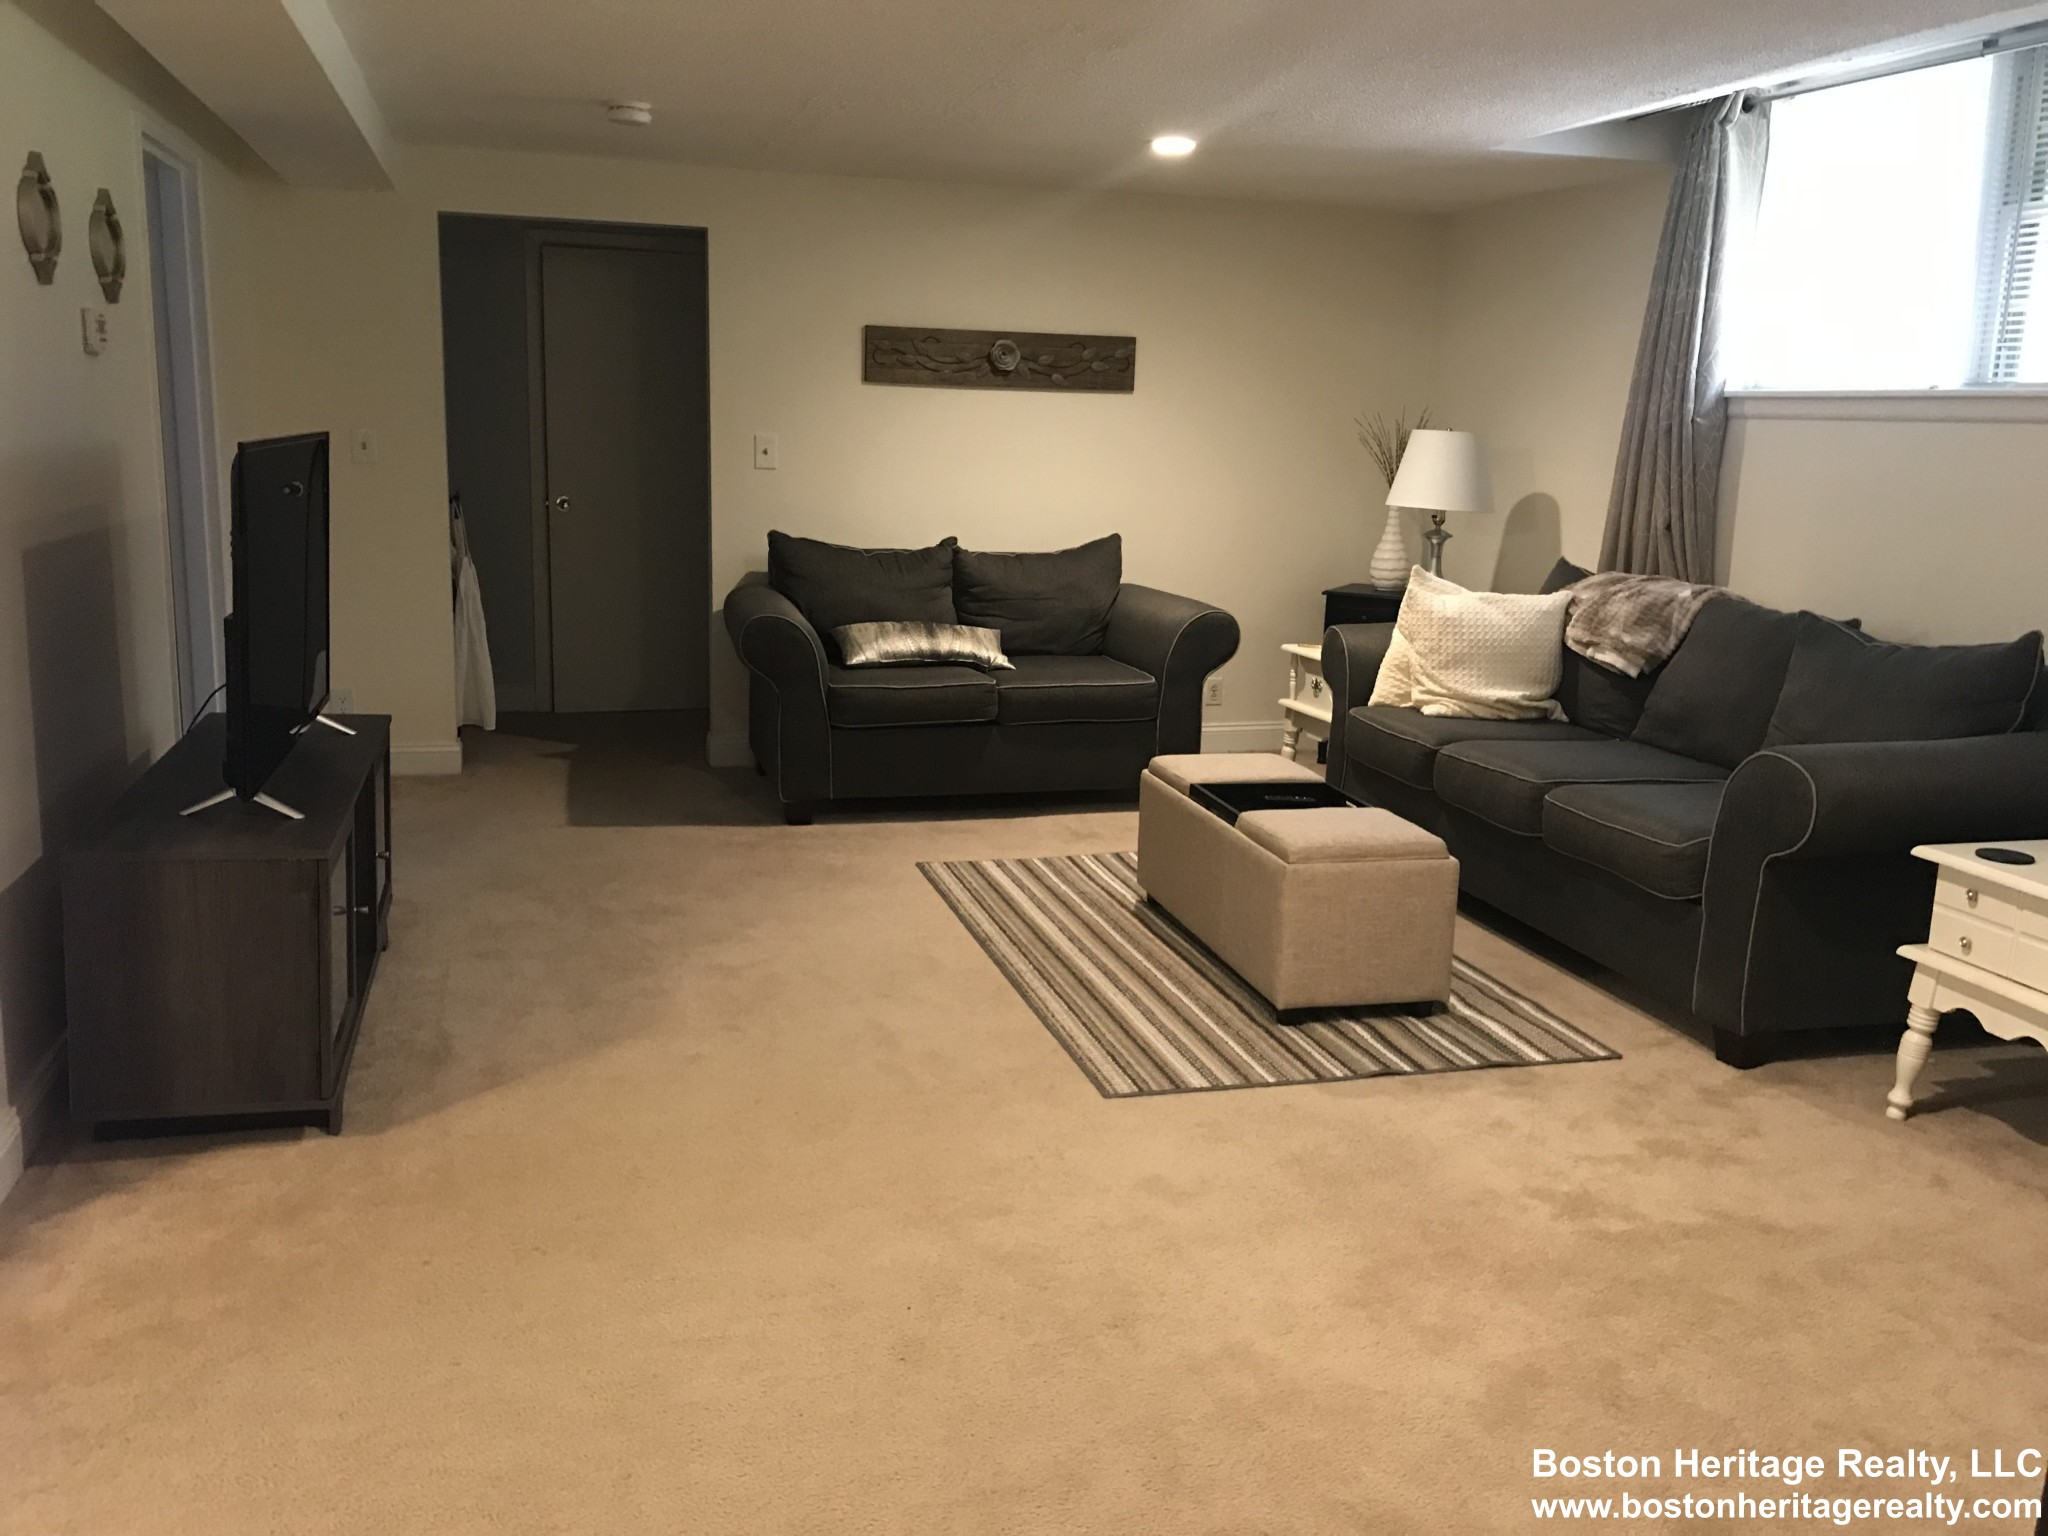 2 Beds, 1 Bath apartment in Boston for $1,950